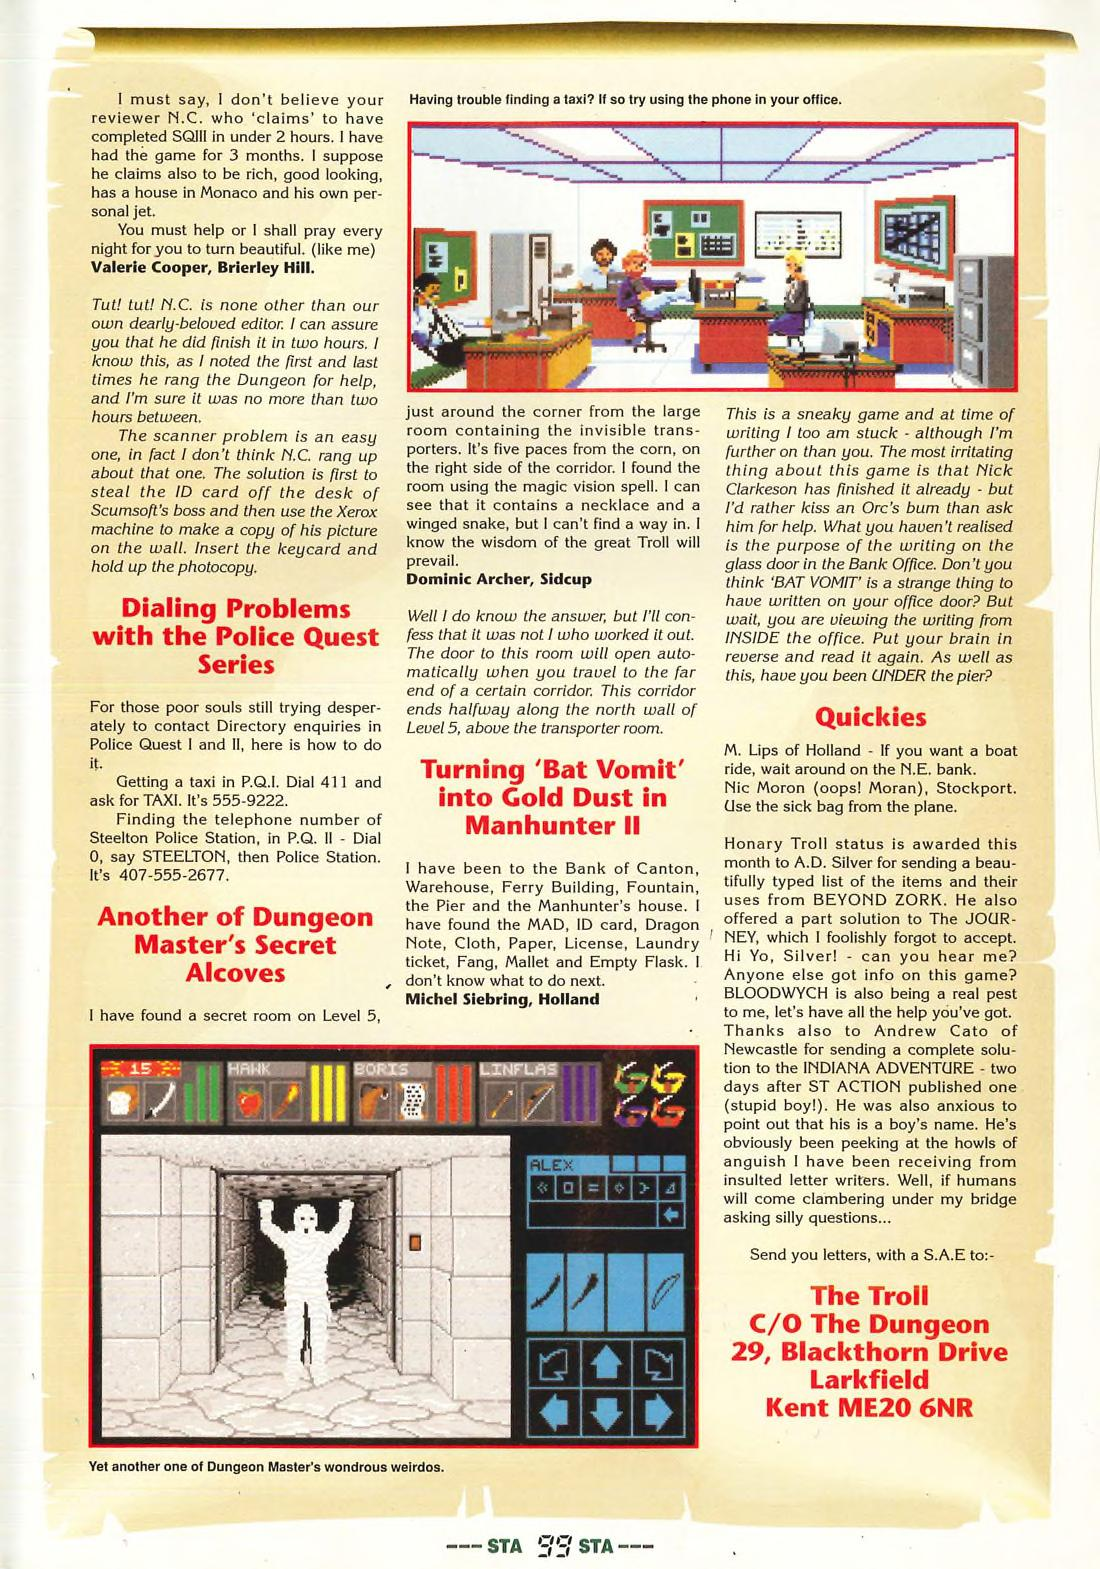 Dungeon Master Hints published in British magazine 'ST Action', Issue #21 January 1990, Page 99